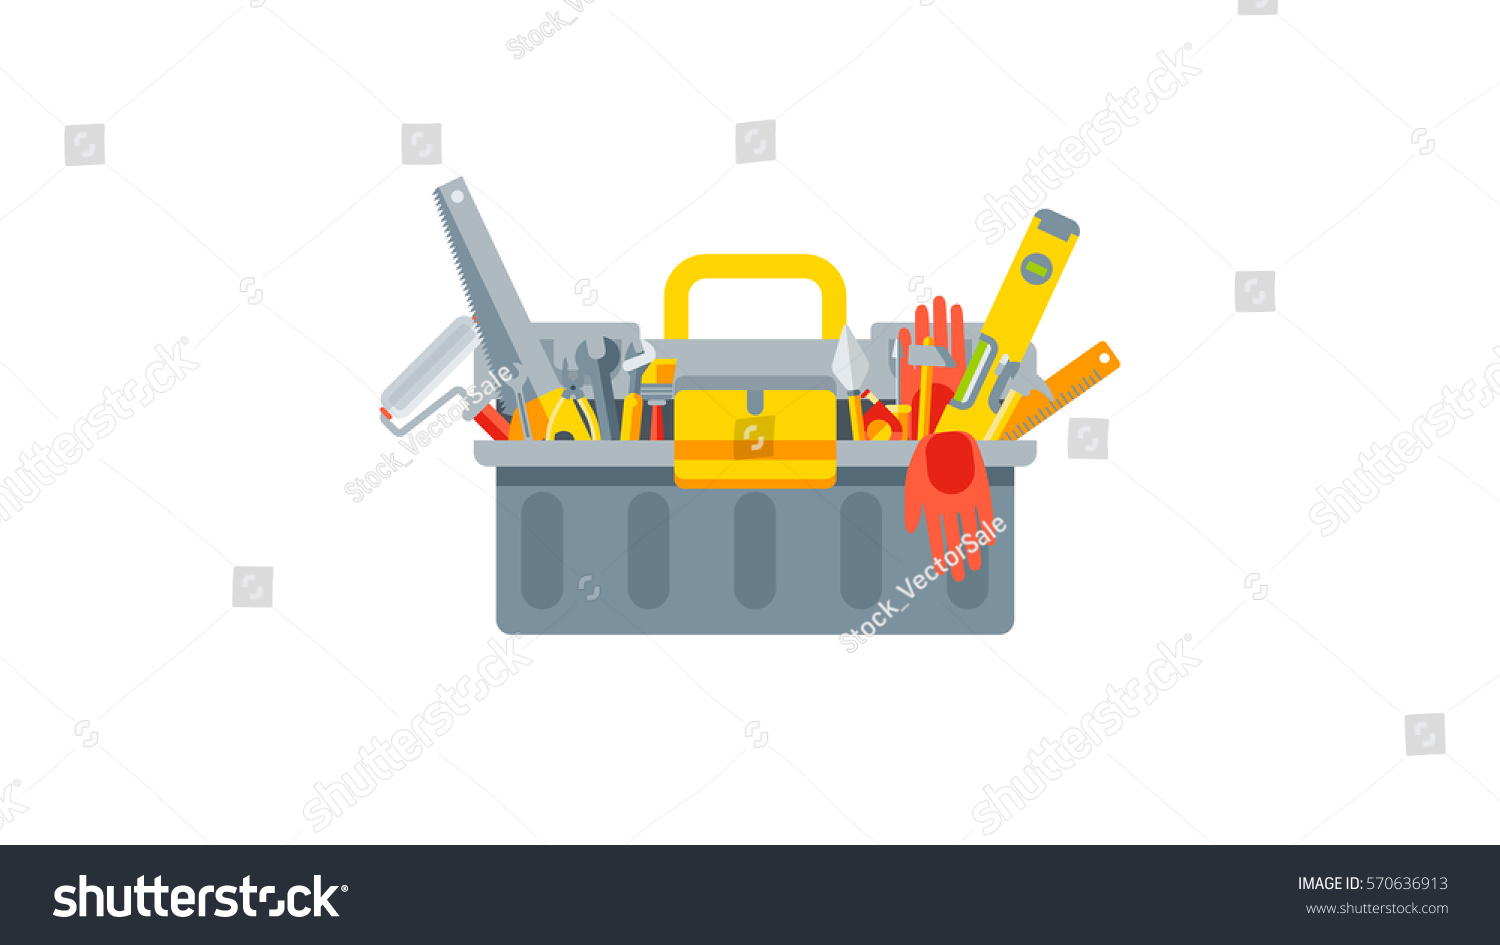 stock vector illustration set isolated icon stock vector 570636913